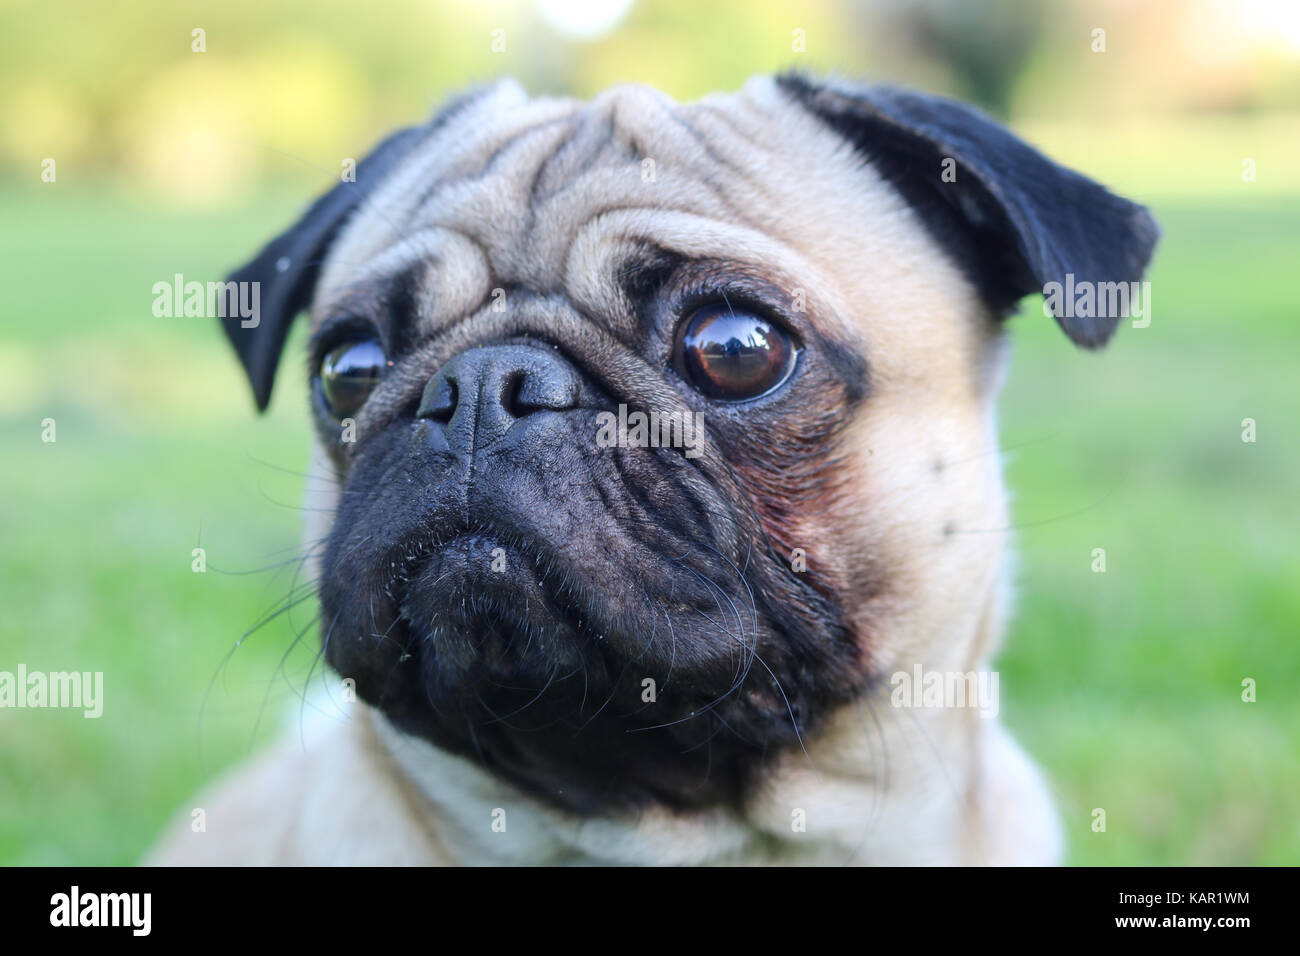 One year old fawn male Pug Stock Photo